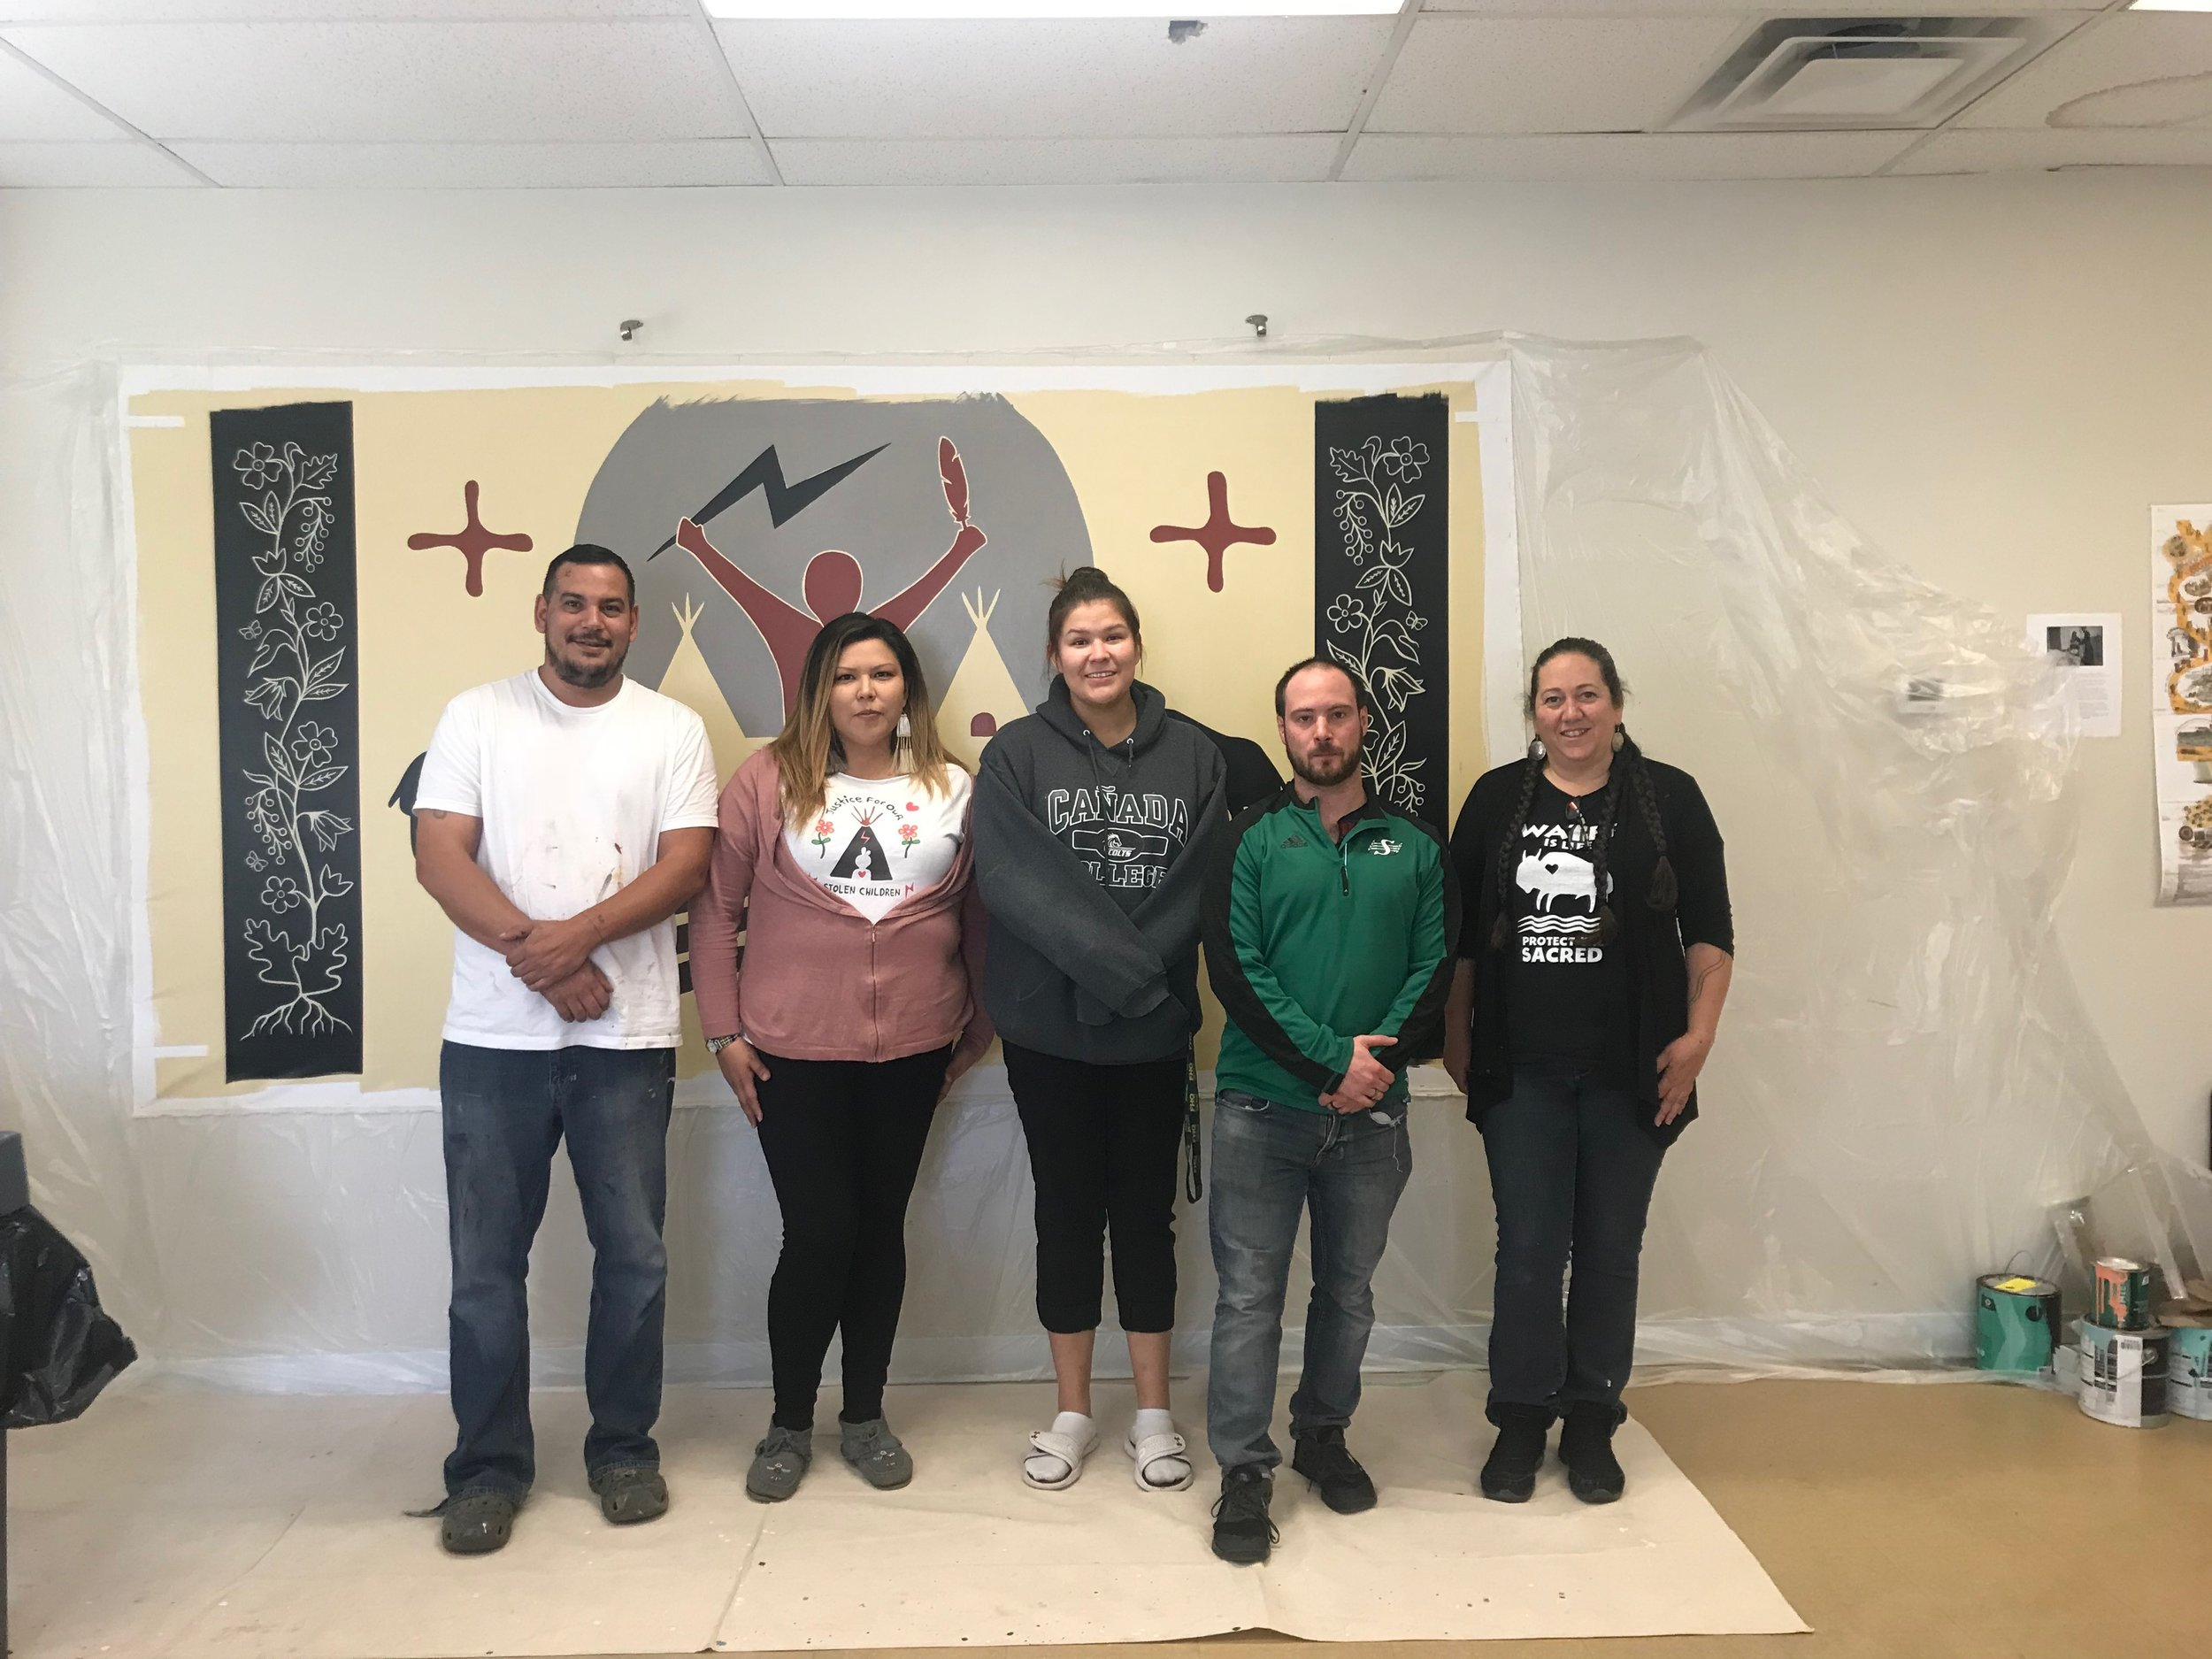 Morning Star Lodge Staff with Isaac Murdoch, Christi Belcourt, and the All Nations Hope mural.